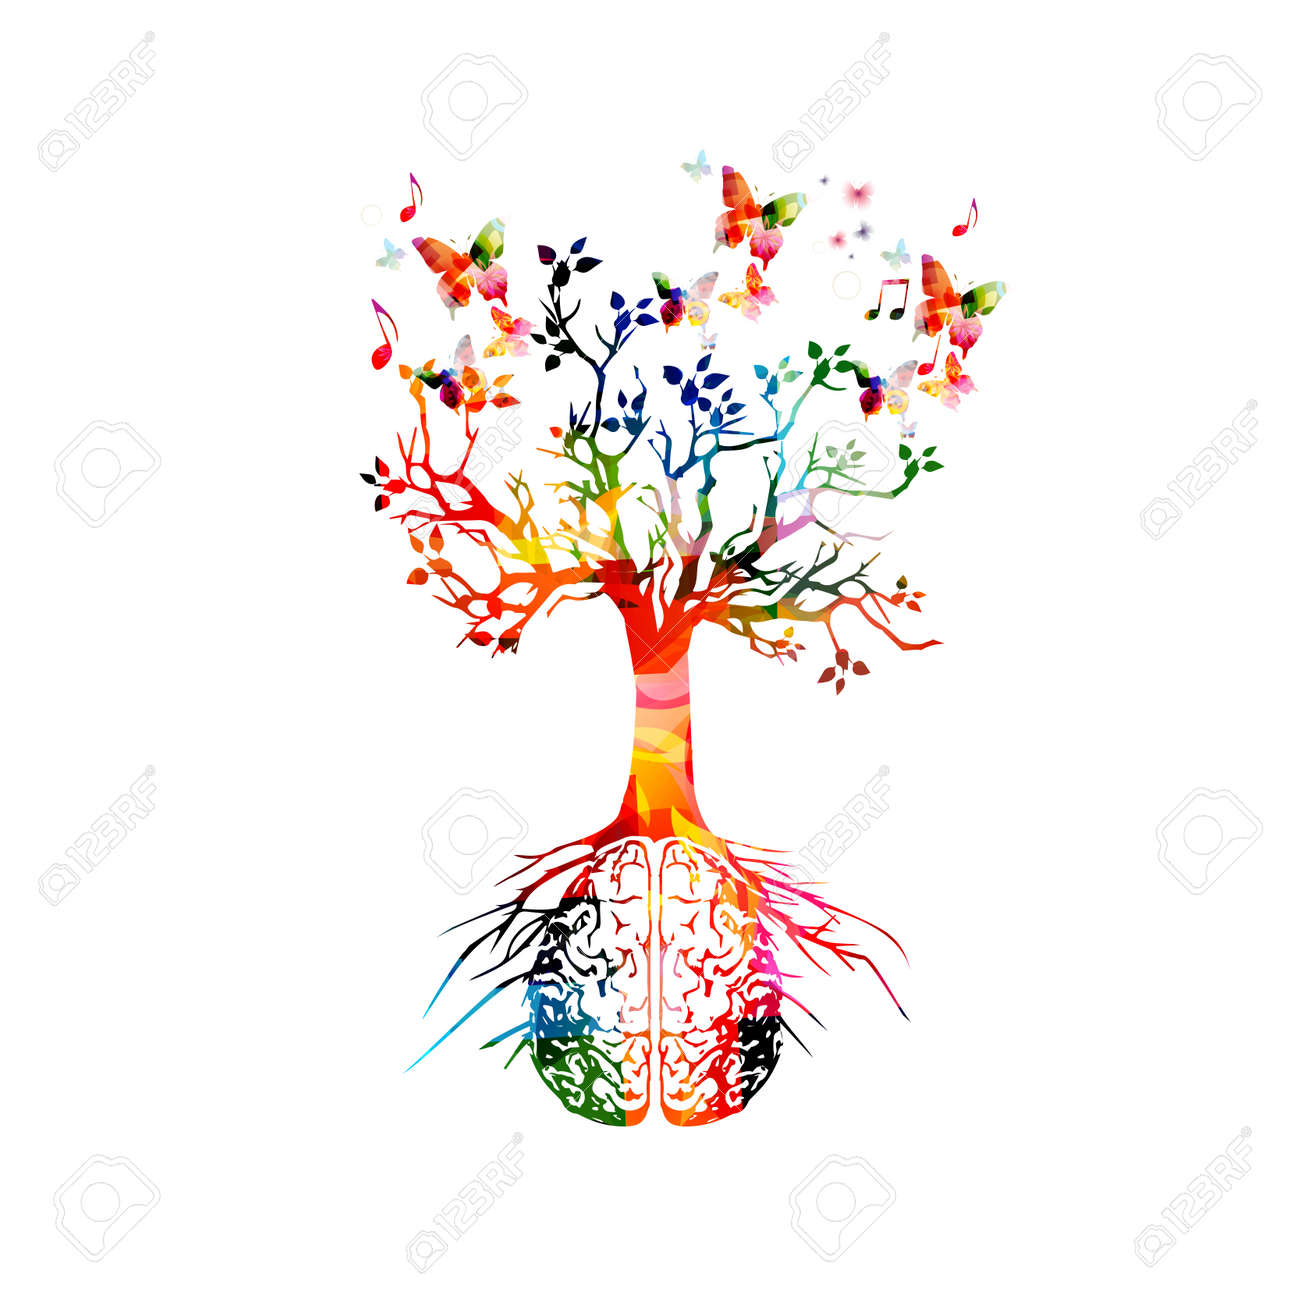 Colorful human brain with growing tree - 124209601